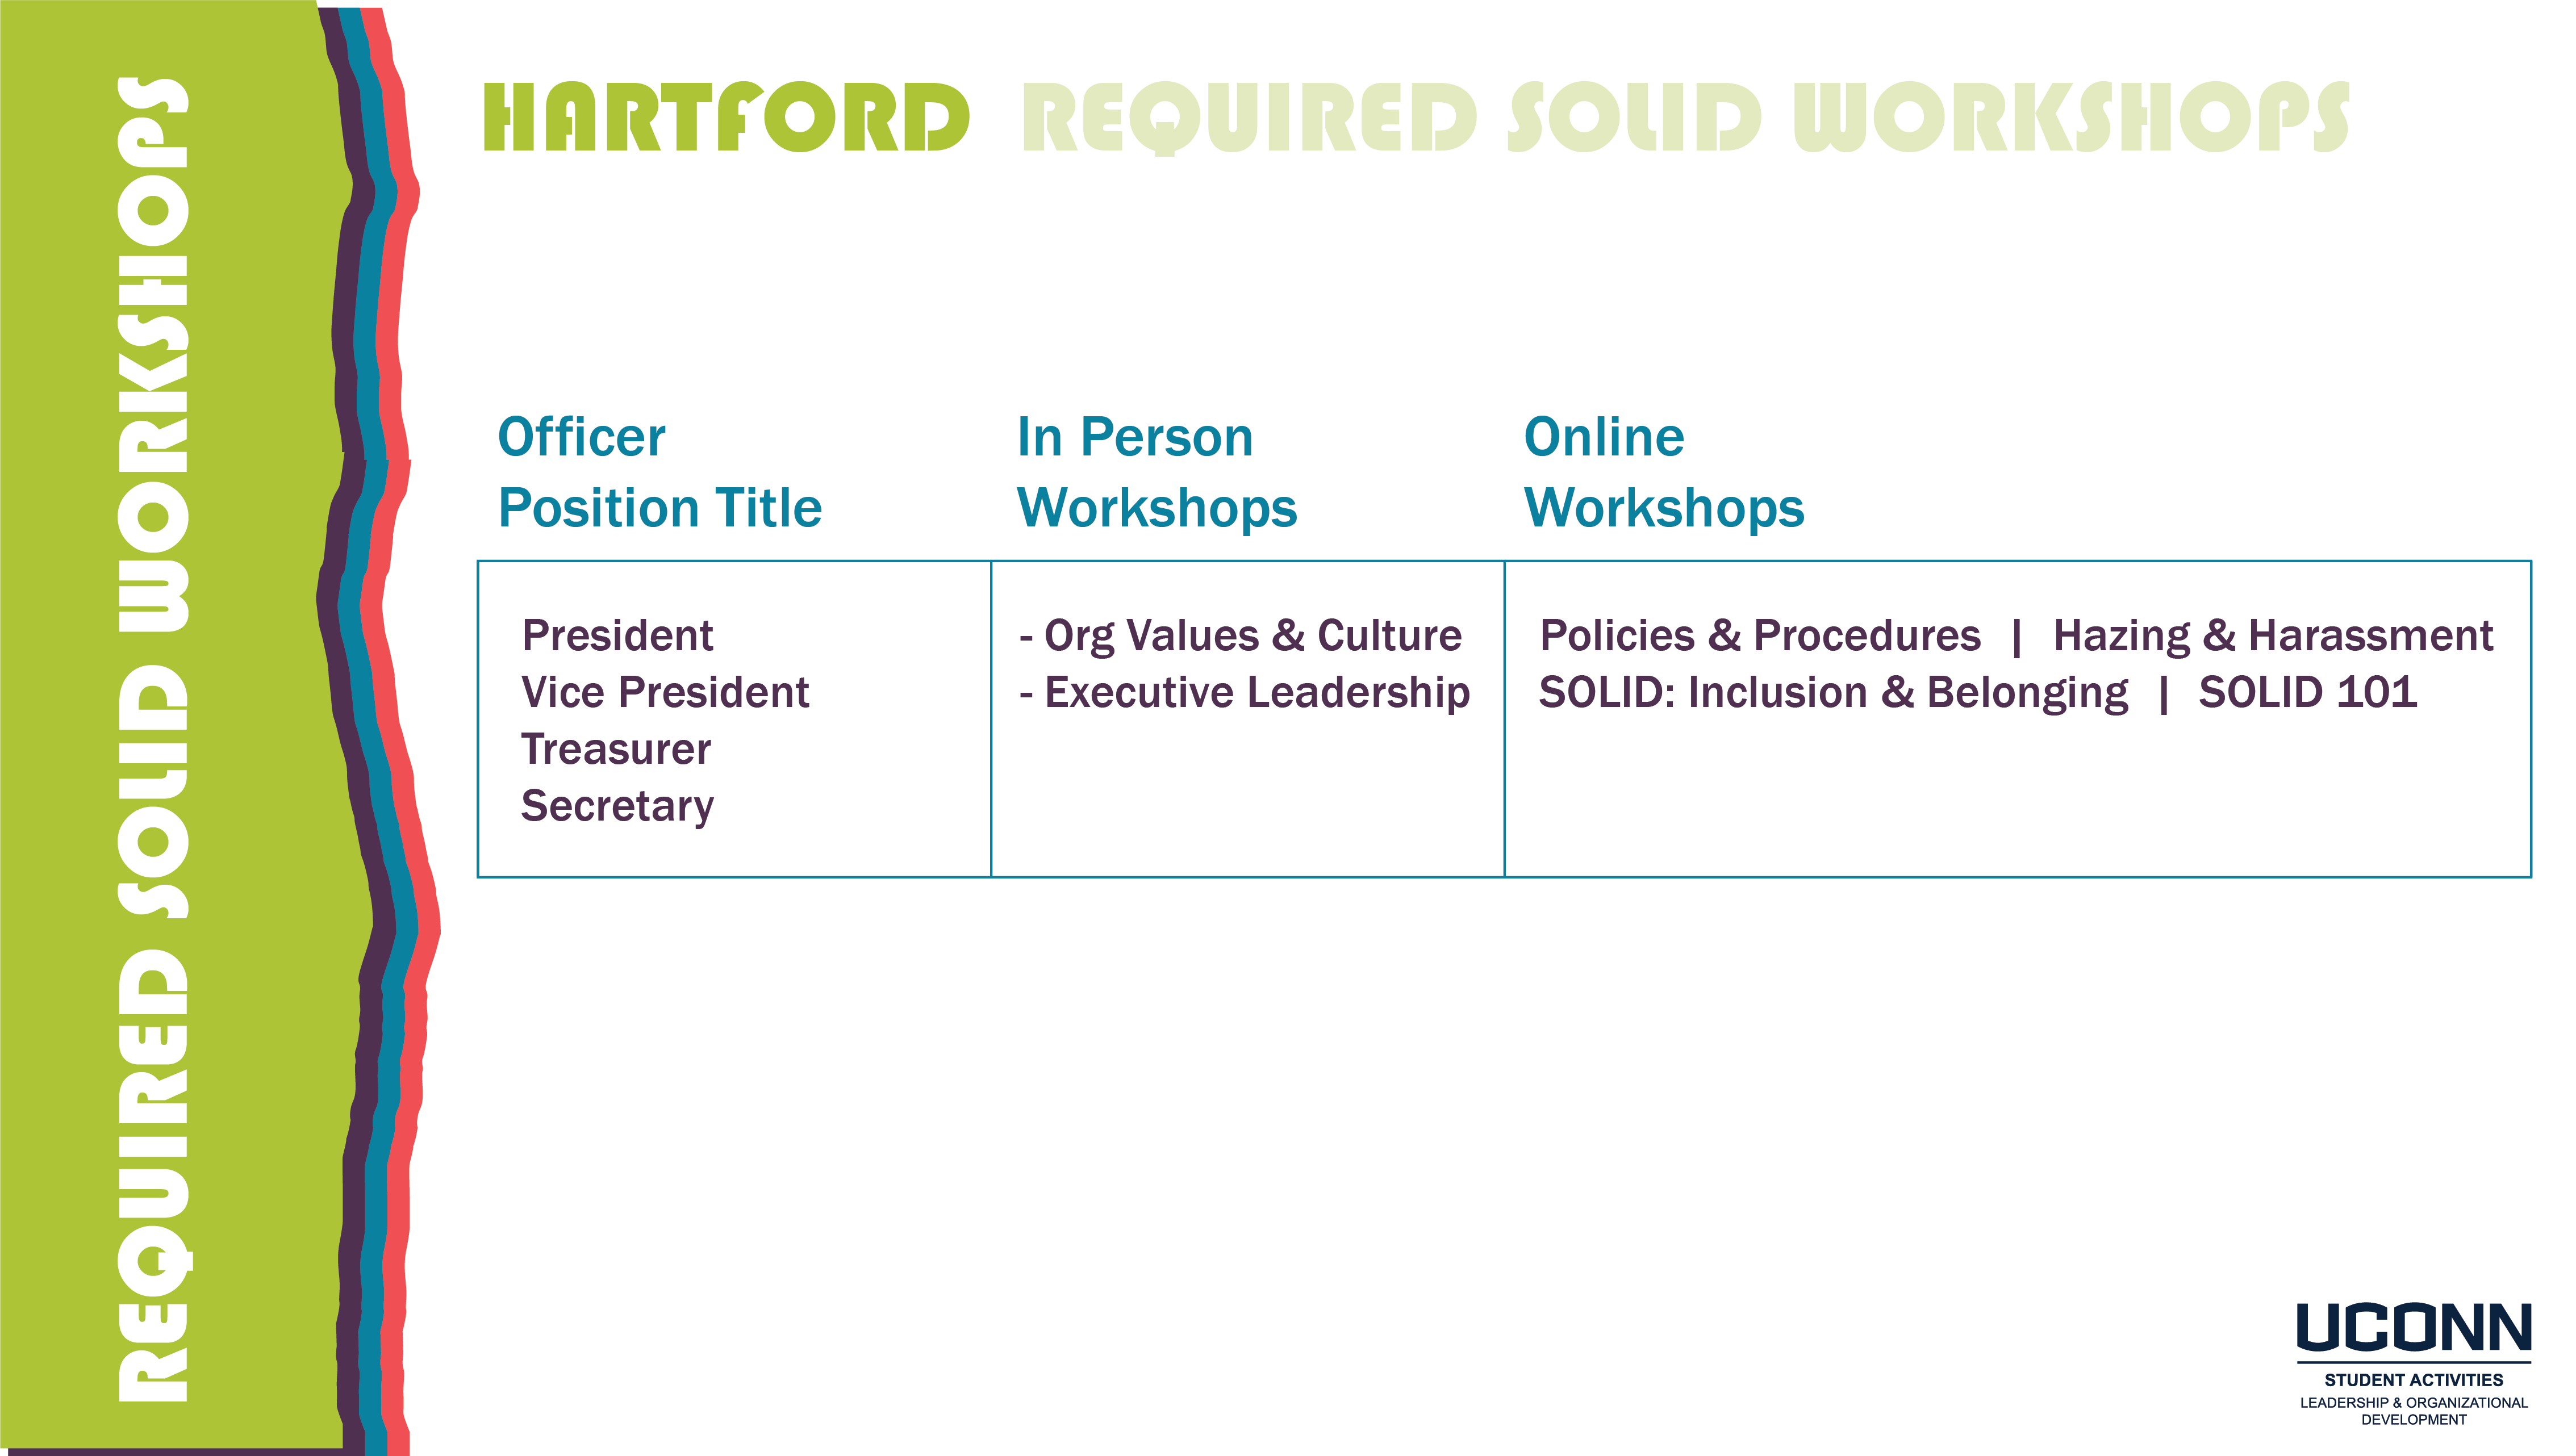 Hartford SOLID Workshop Requirements Image (read below for text)